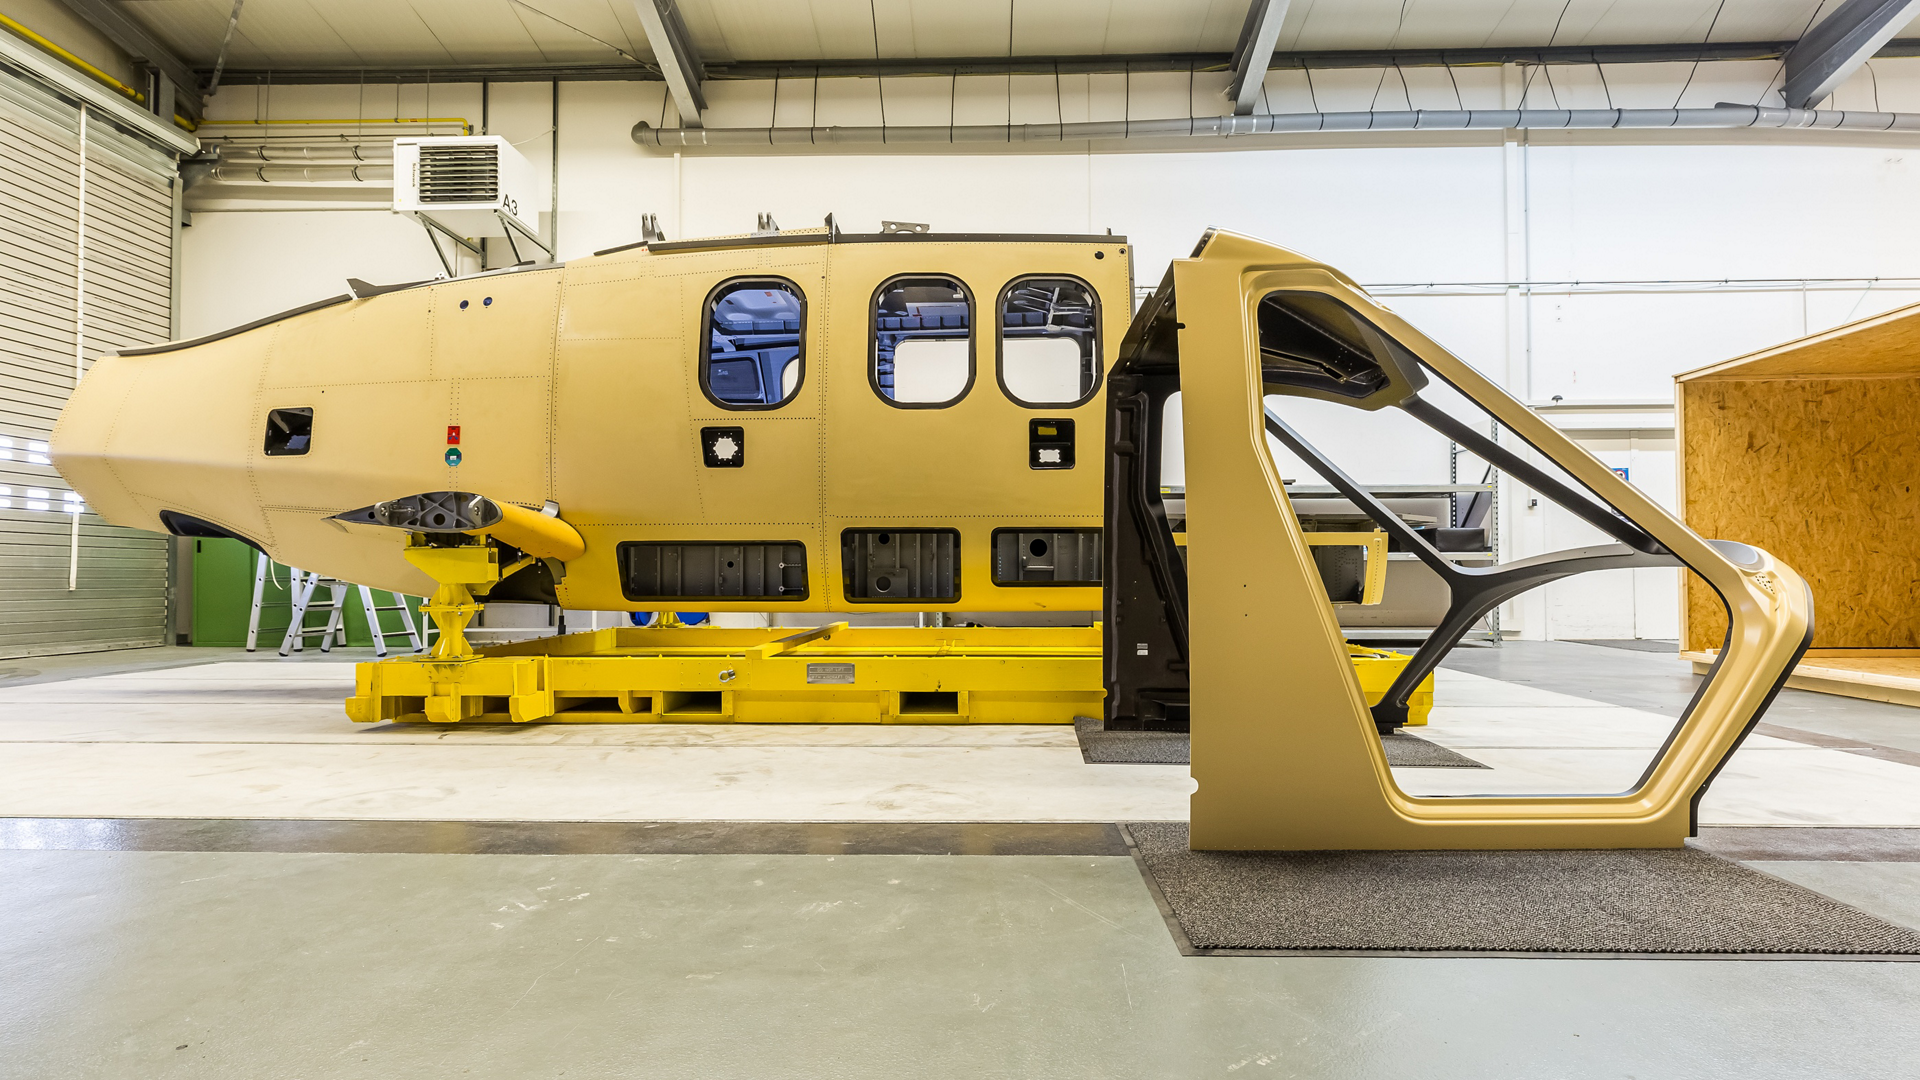 Two components for Airbus' Racer high-speed demonstrator – the airframe and canopy – are shown ready for assembly